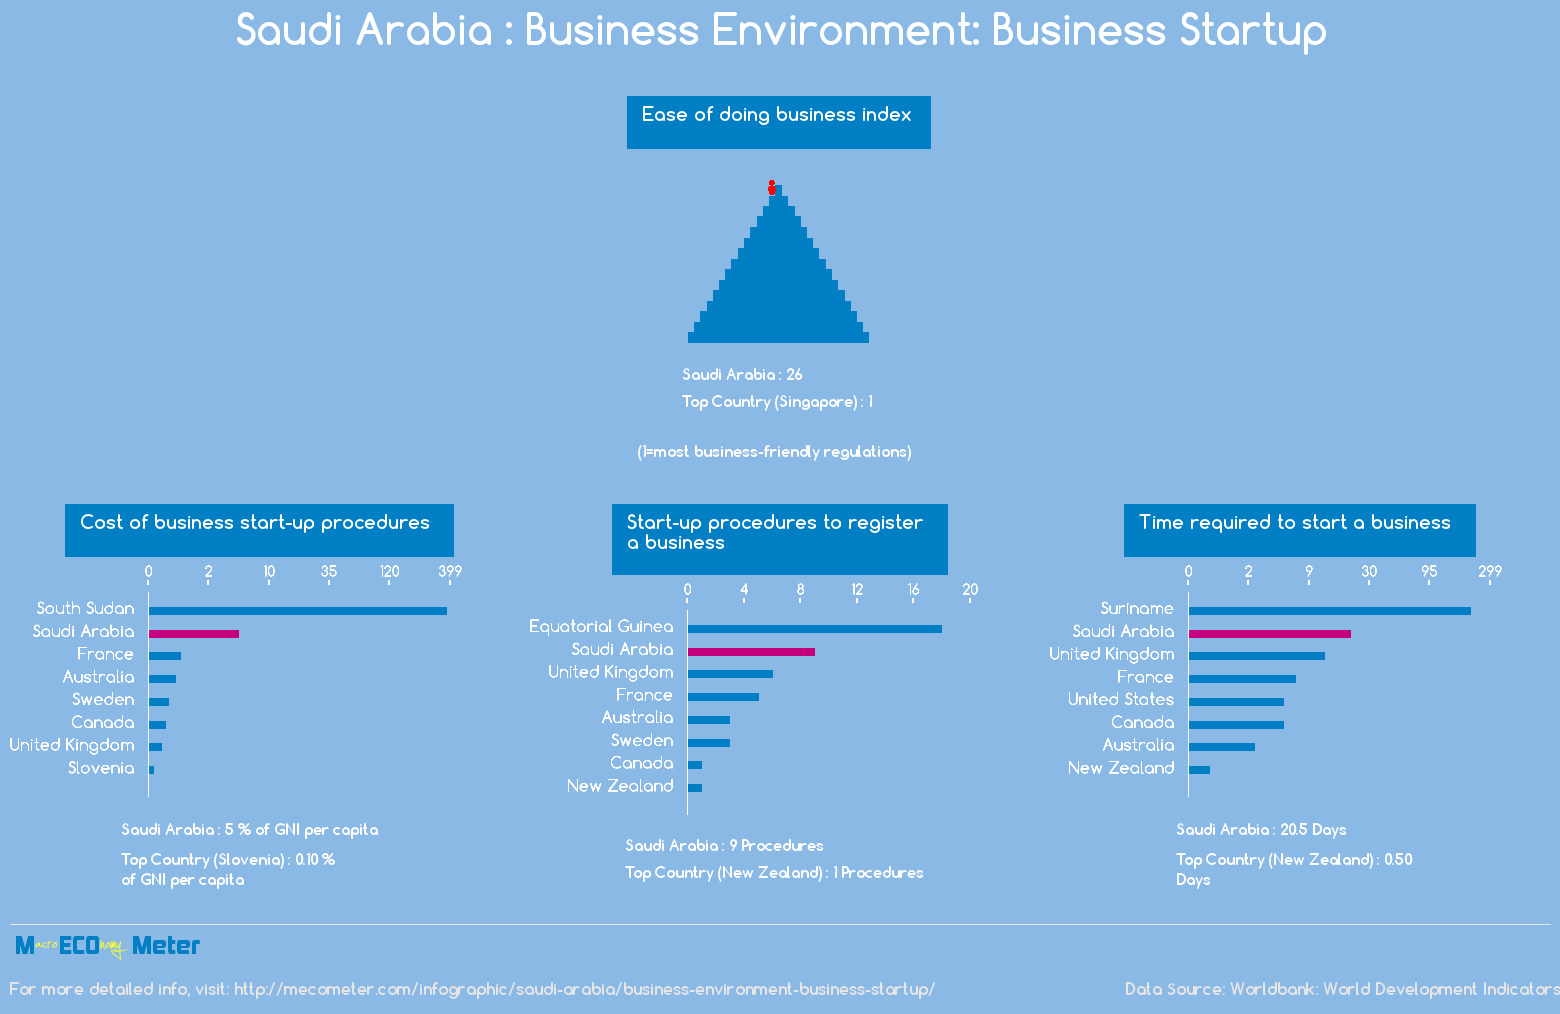 Saudi Arabia : Business Environment: Business Startup